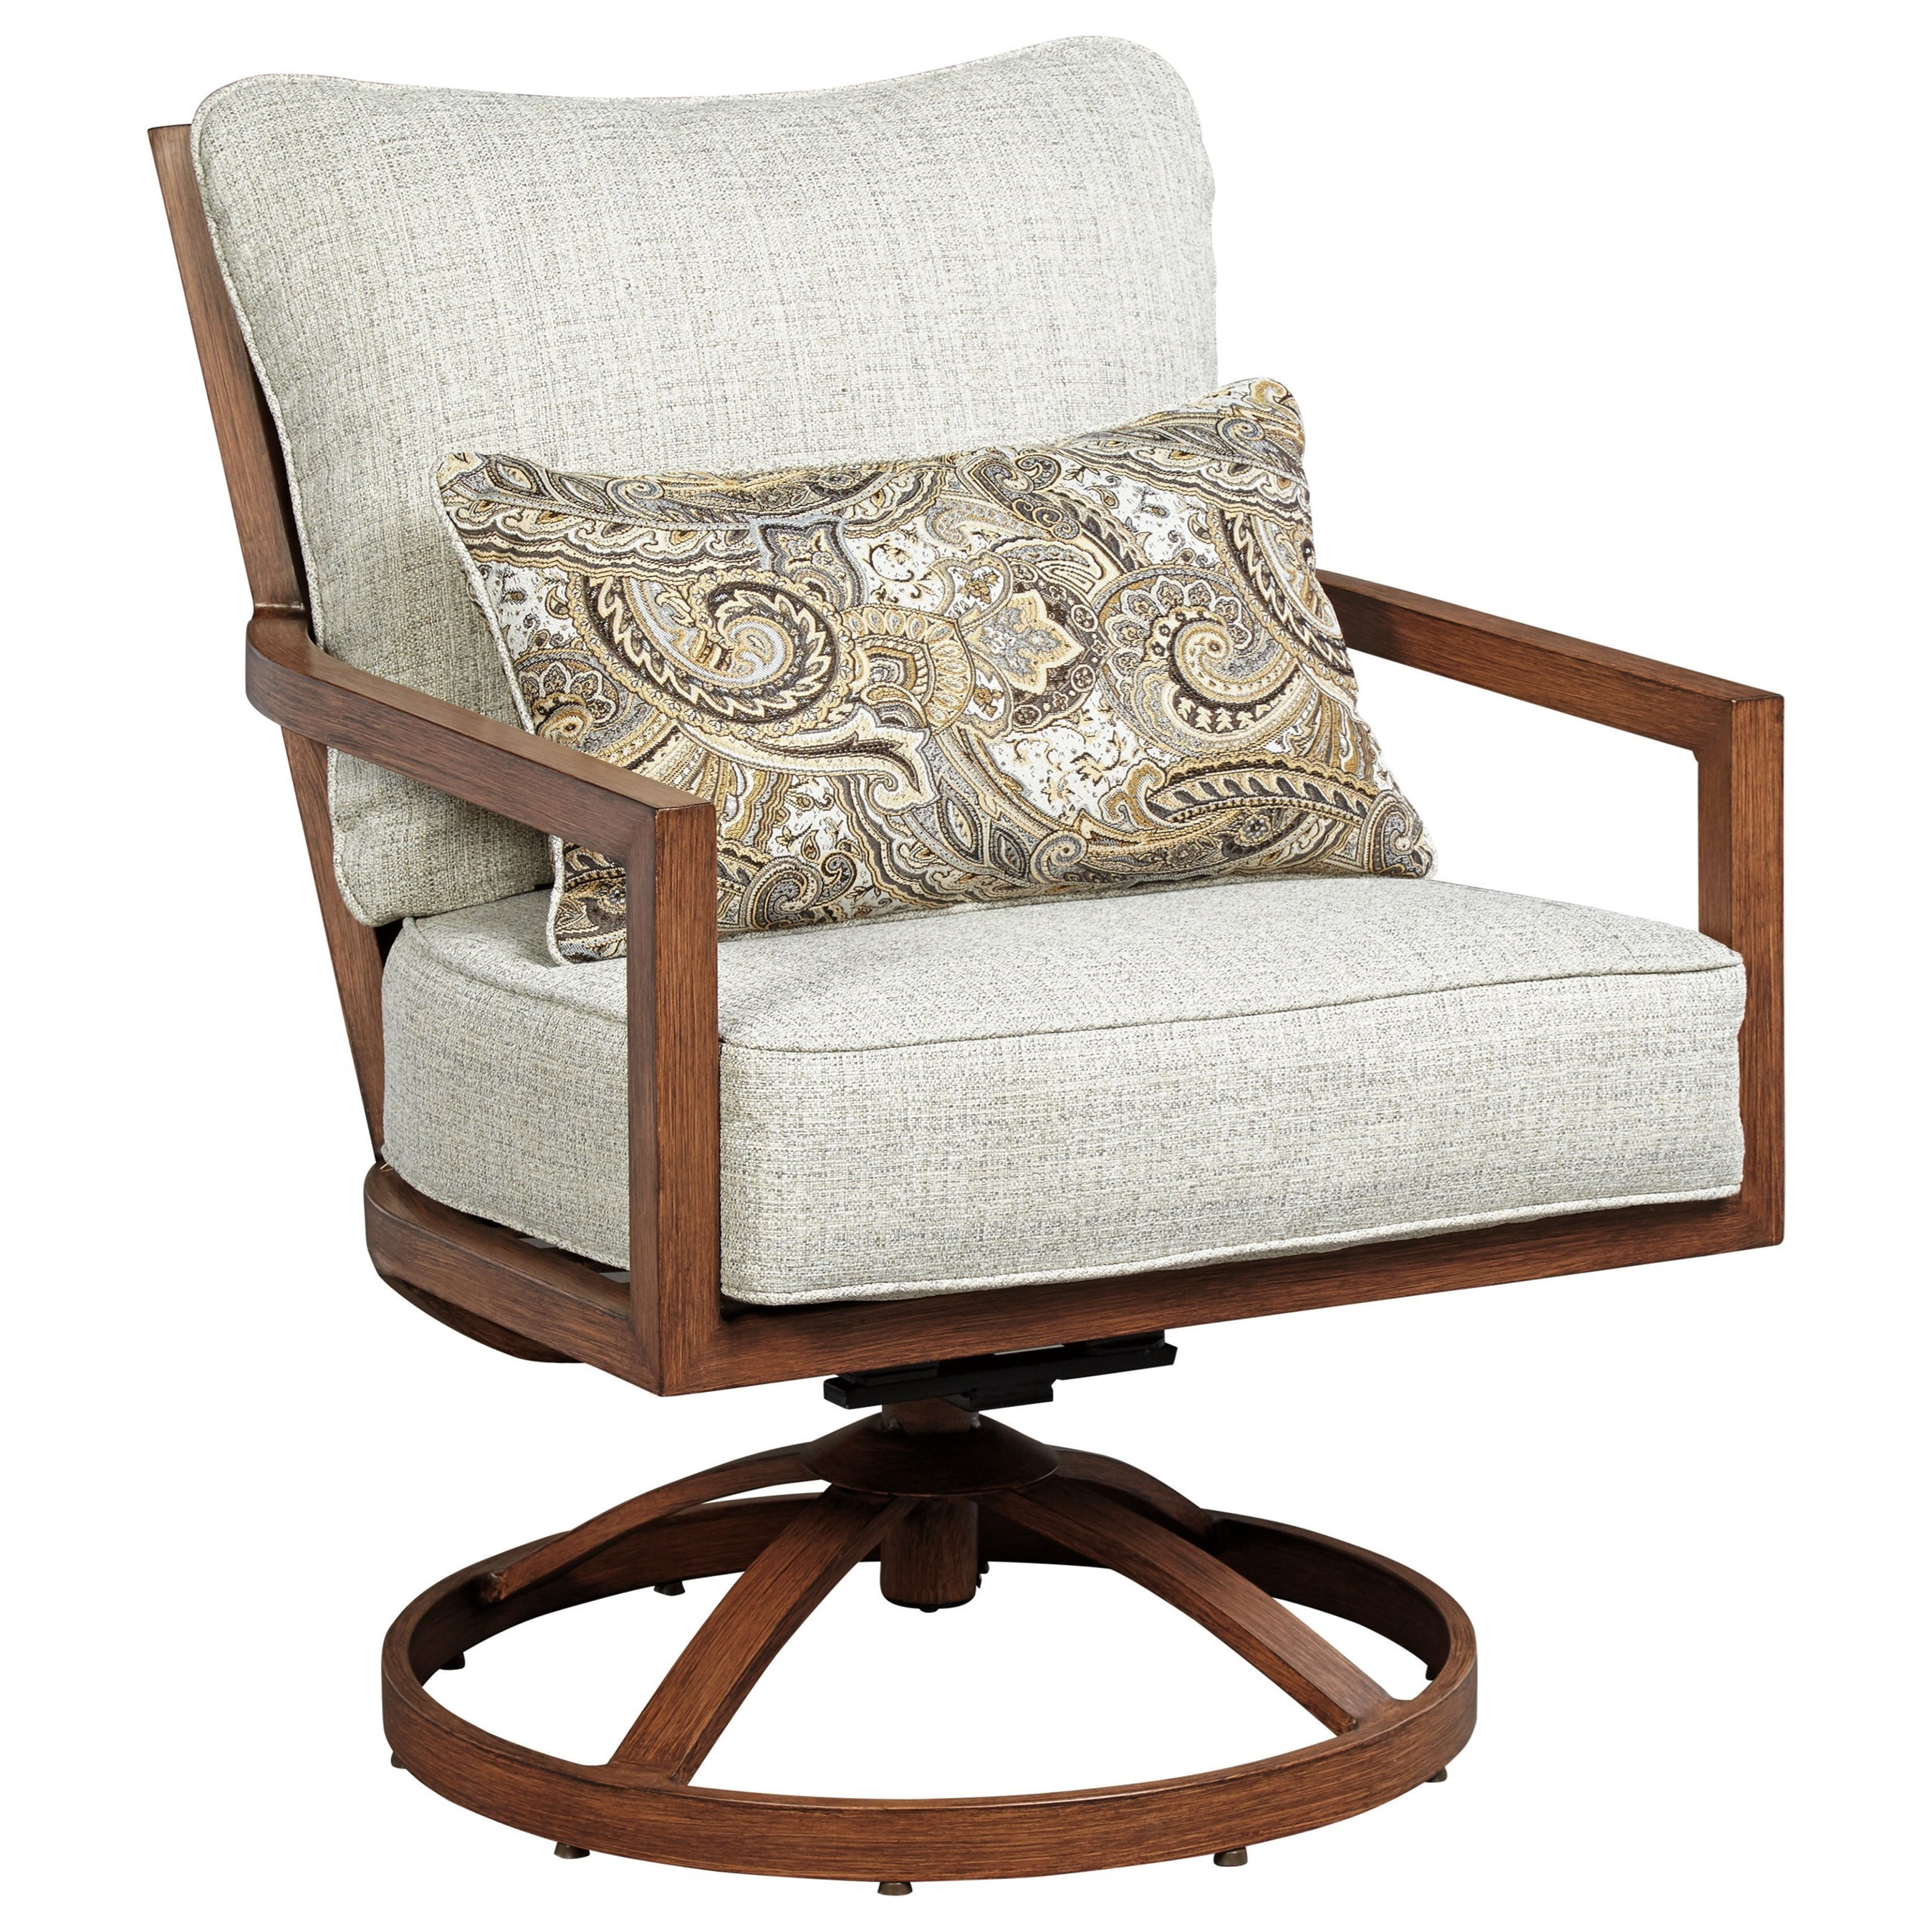 Signature Design by Ashley Zoranne Set of 2 Swivel Lounge